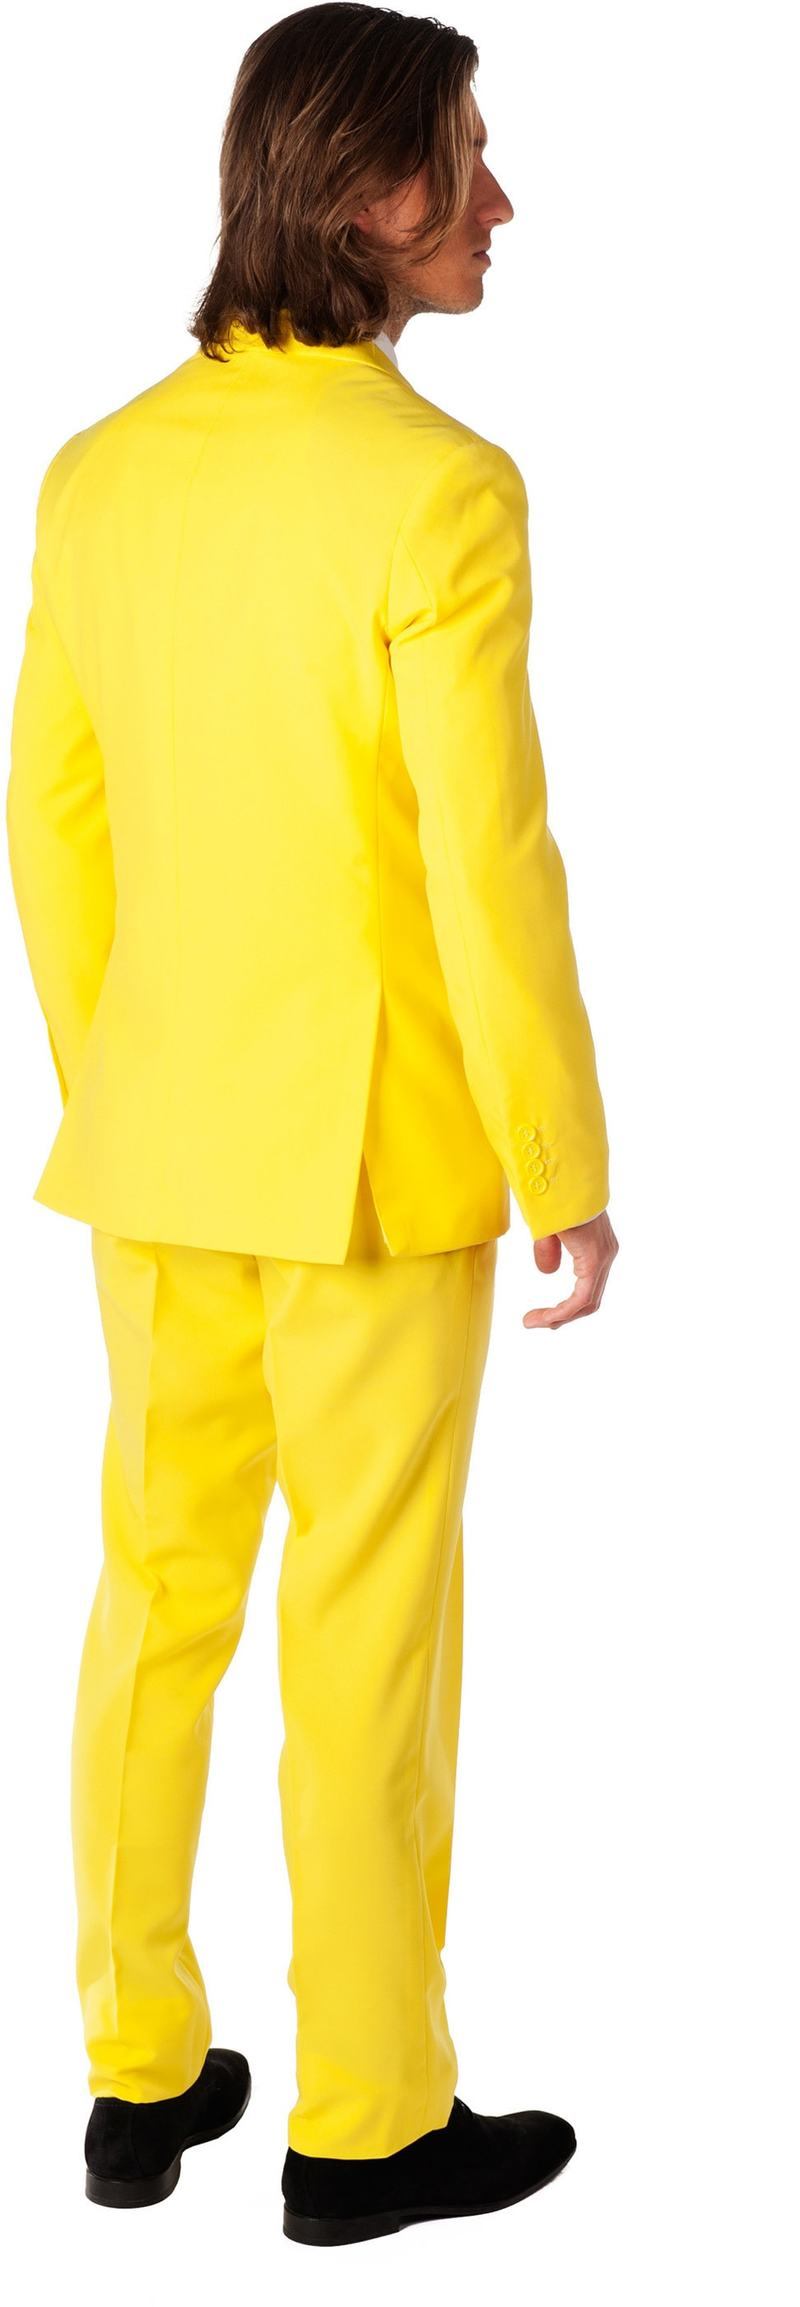 OppoSuits Yellow Fellow Suit photo 1